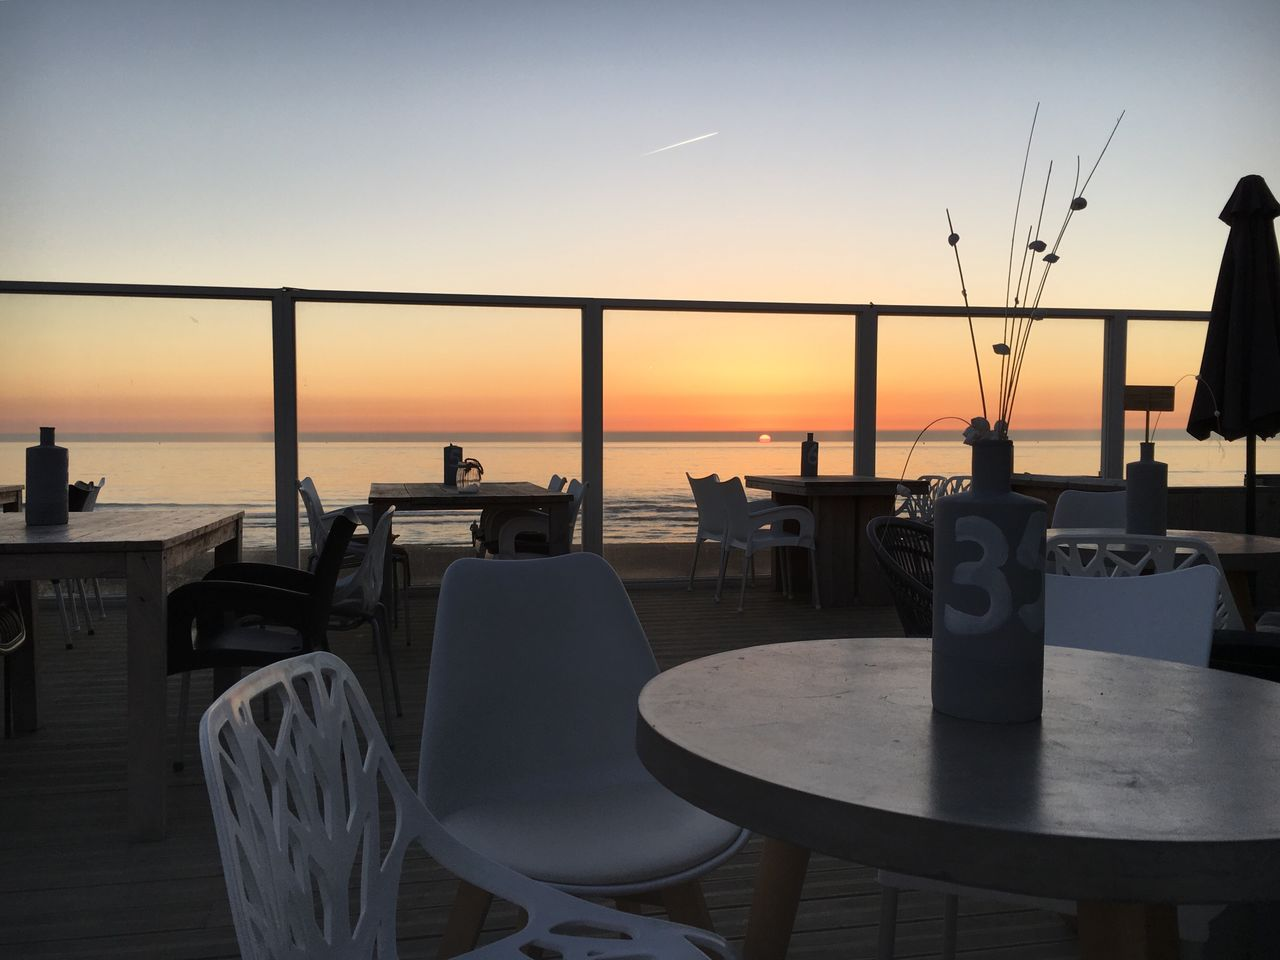 sunset, sea, chair, sky, water, horizon over water, nature, table, no people, silhouette, beauty in nature, tranquility, outdoors, scenics, sun, beach, seat, clear sky, architecture, day